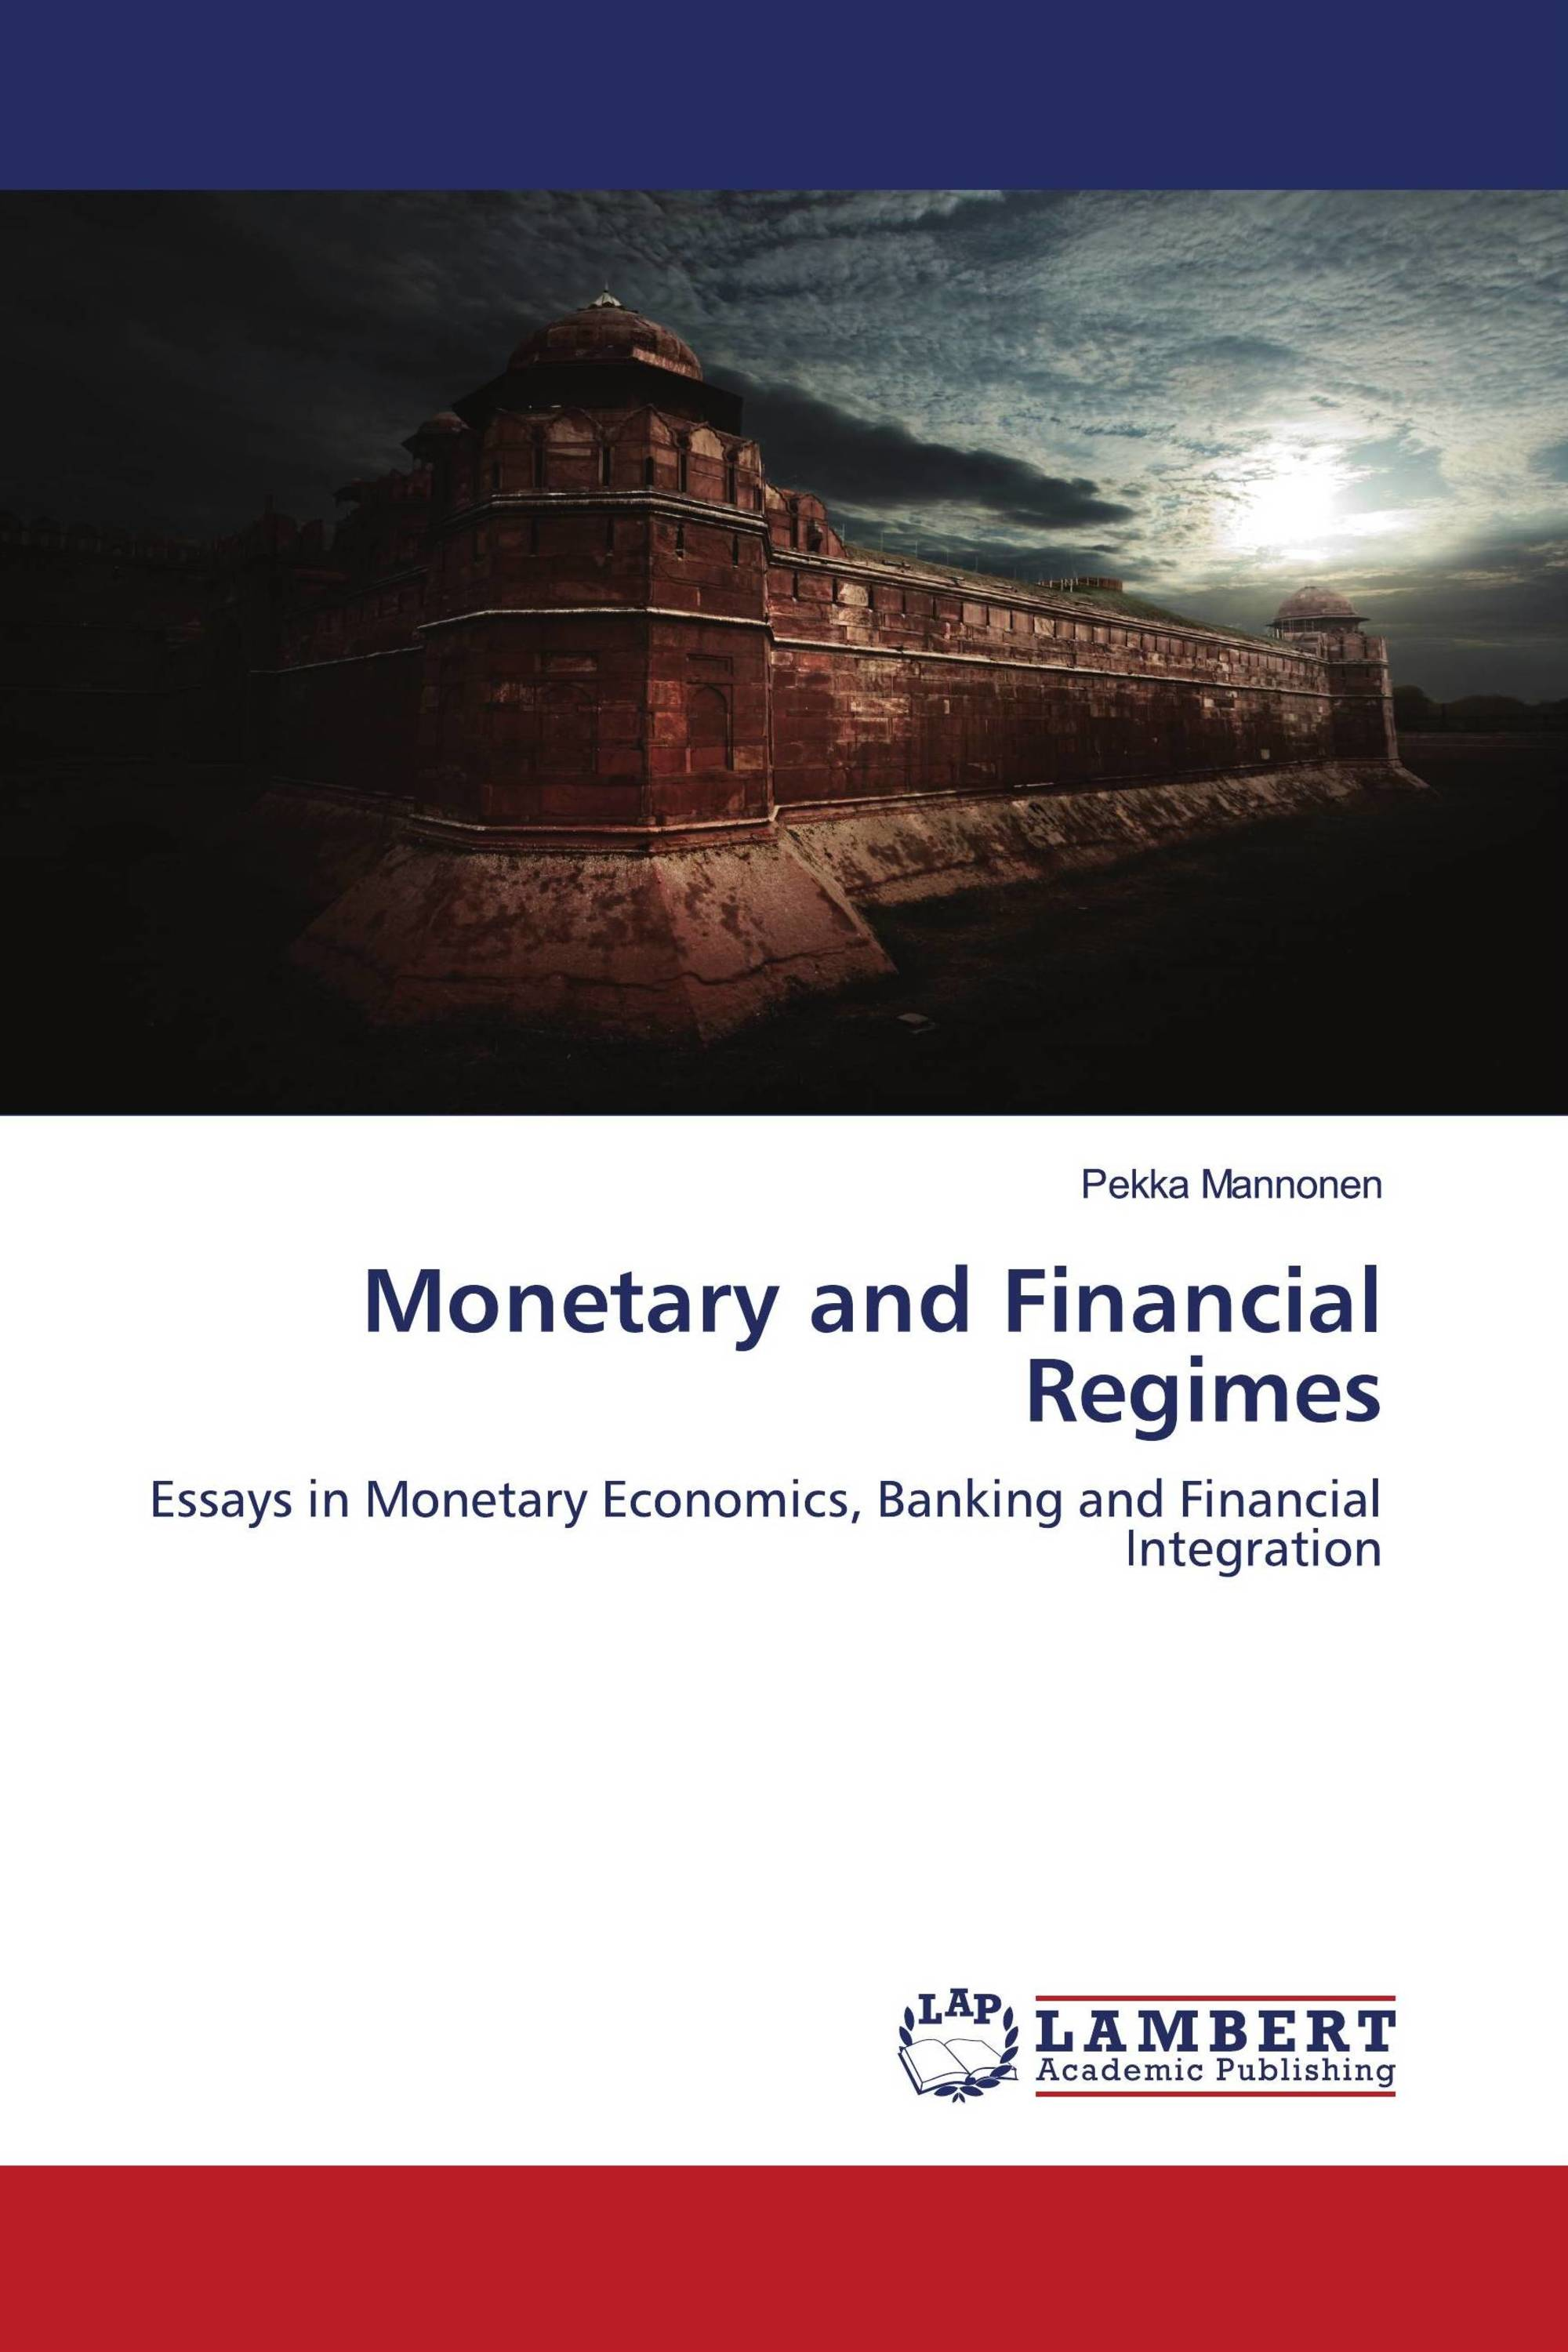 Monetary and Financial Regimes